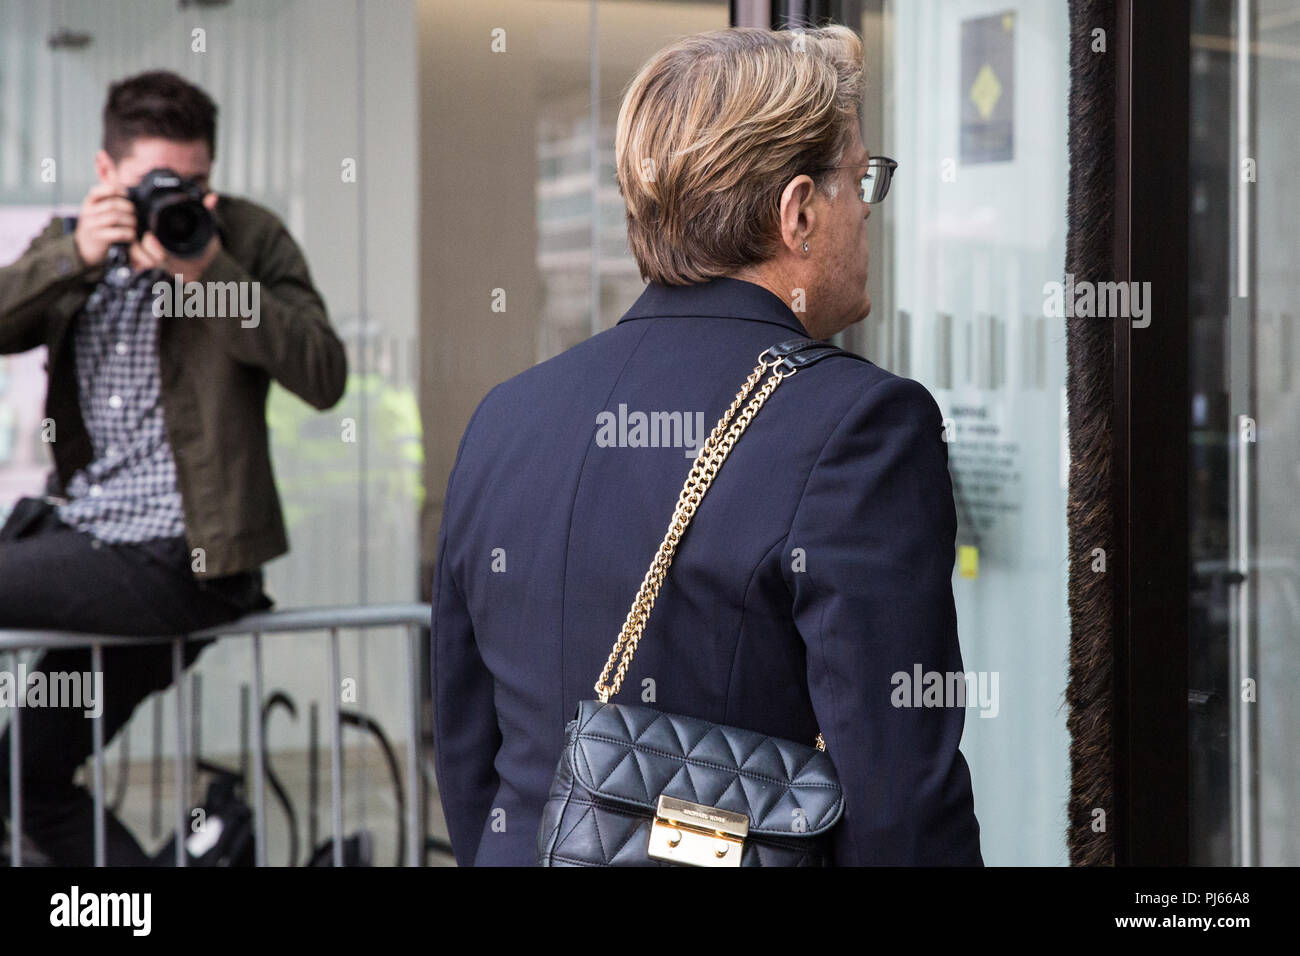 London, UK. 4th September, 2018. Eddie Izzard, former Labour NEC member, arrives at the headquarters of the Labour Party on the day on which the NEC was expected to adopt the IHRA definition and examples of anti-Semitism. Credit: Mark Kerrison/Alamy Live News - Stock Image